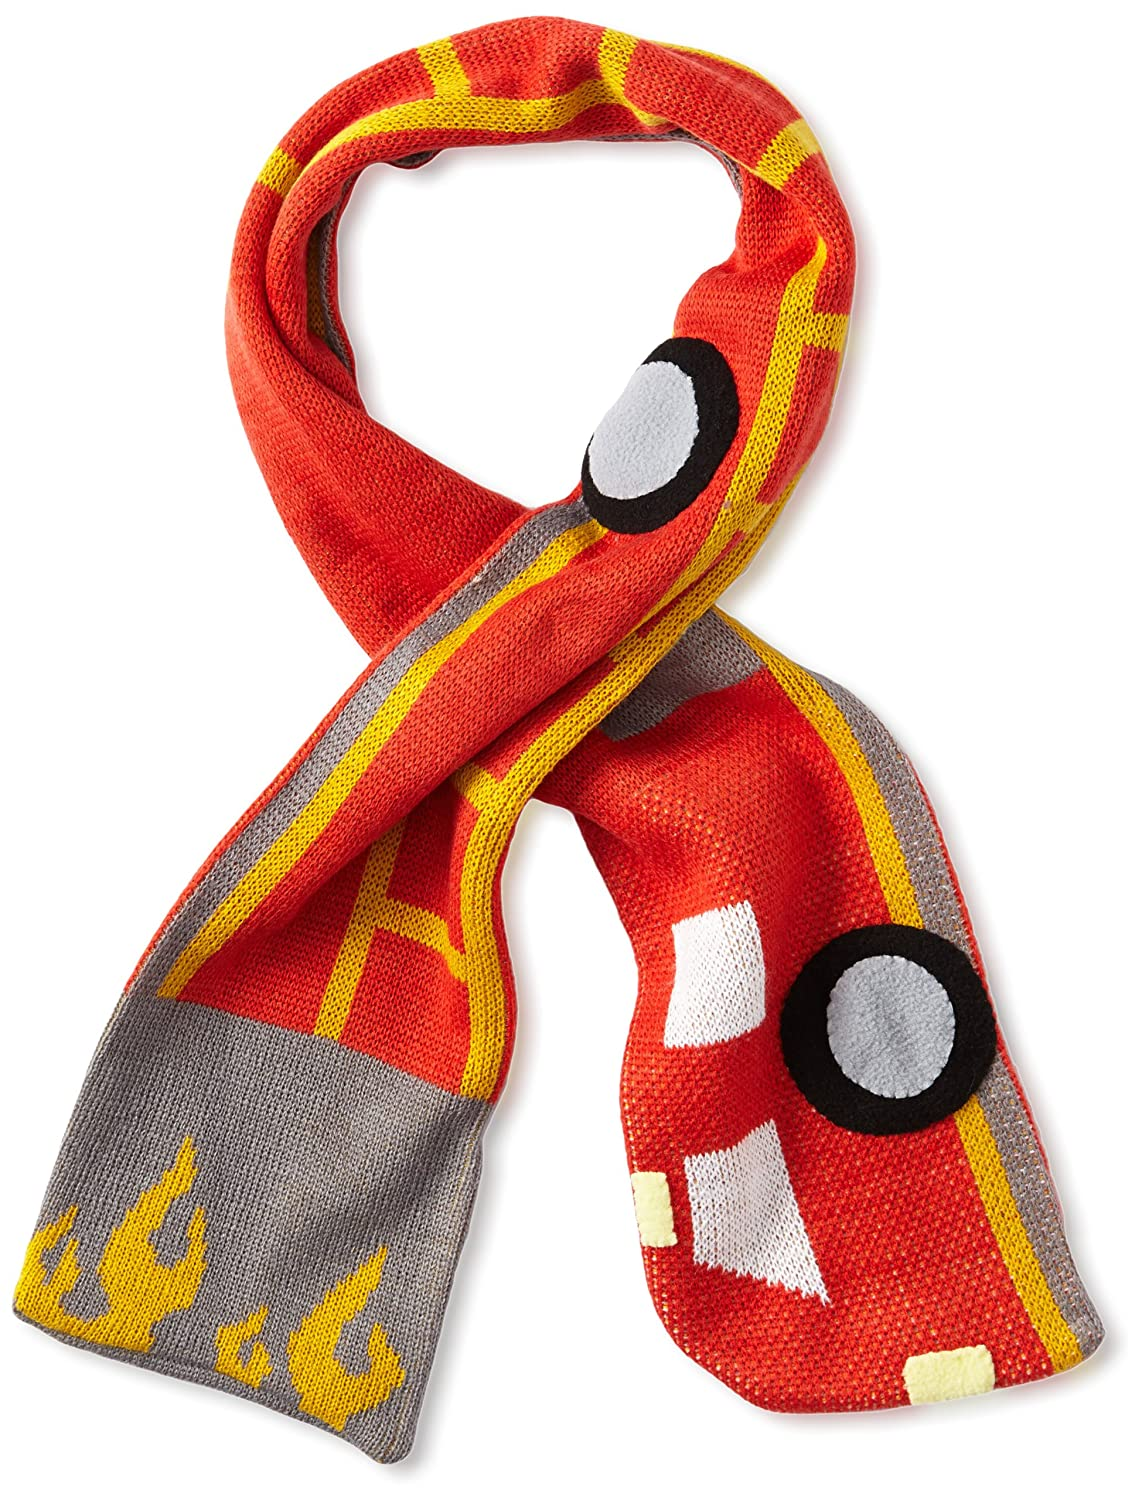 Kidorable Little Boys' Fireman Scarf Red One Size Kidorable Boys 2-7 120PSCARFFIRE